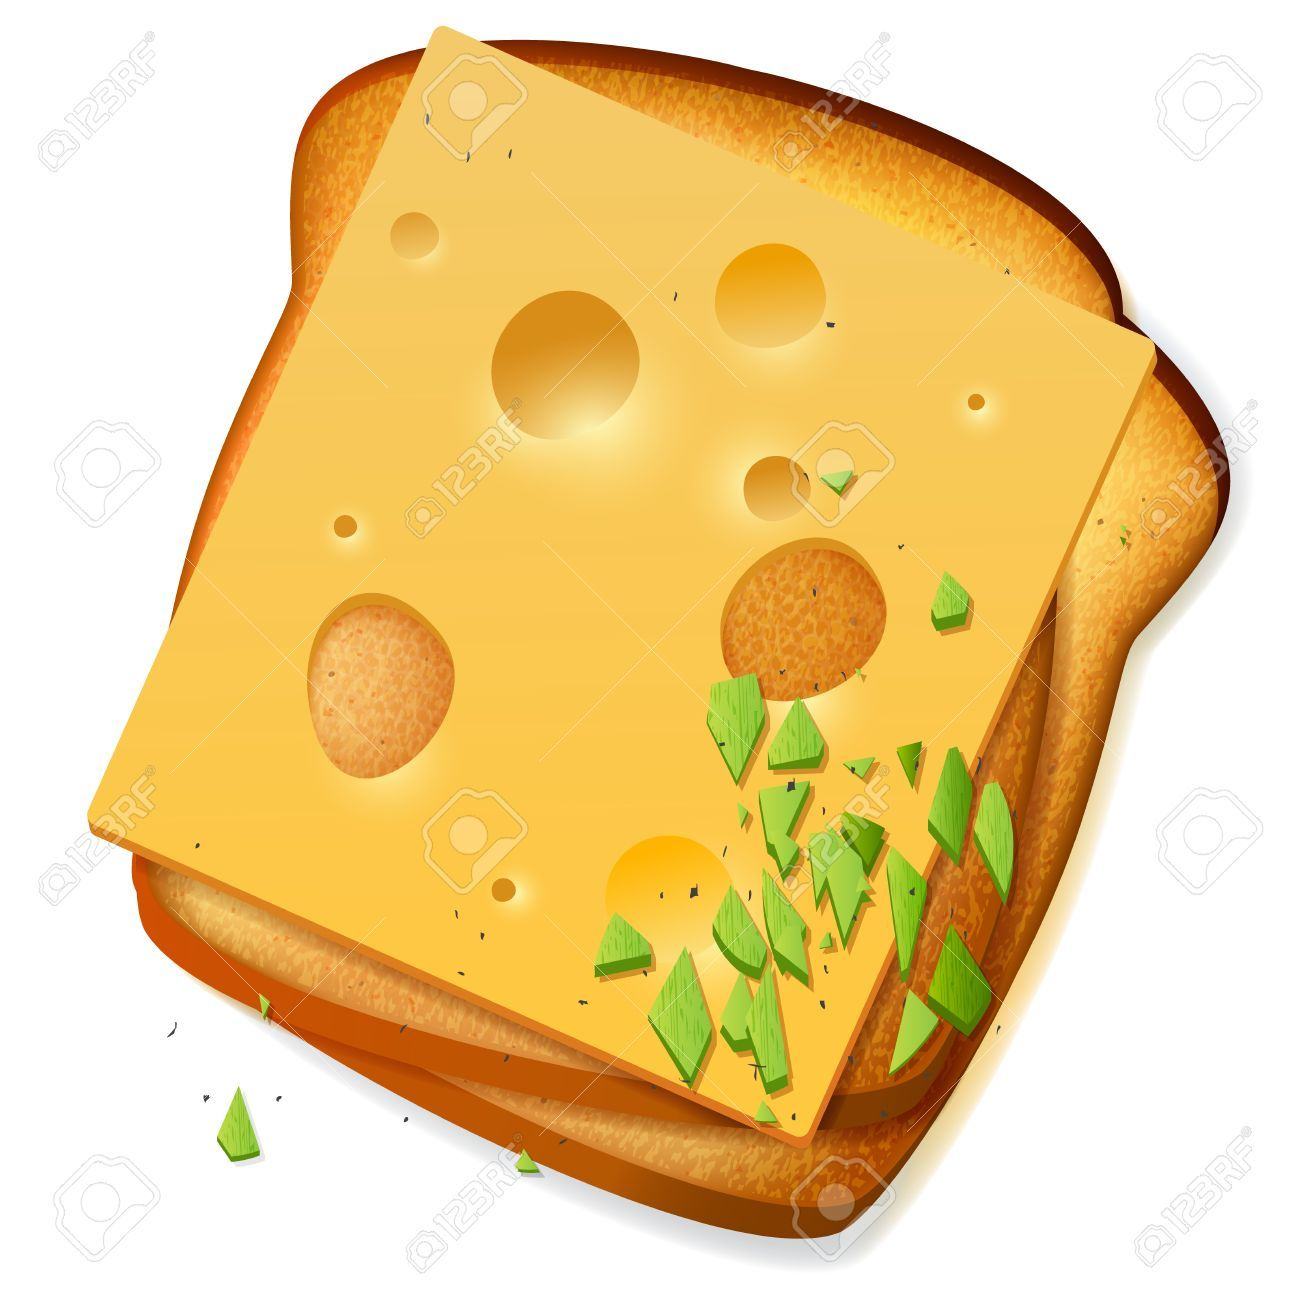 Toasted bread slices with cheddar cheese » Clipart Portal.